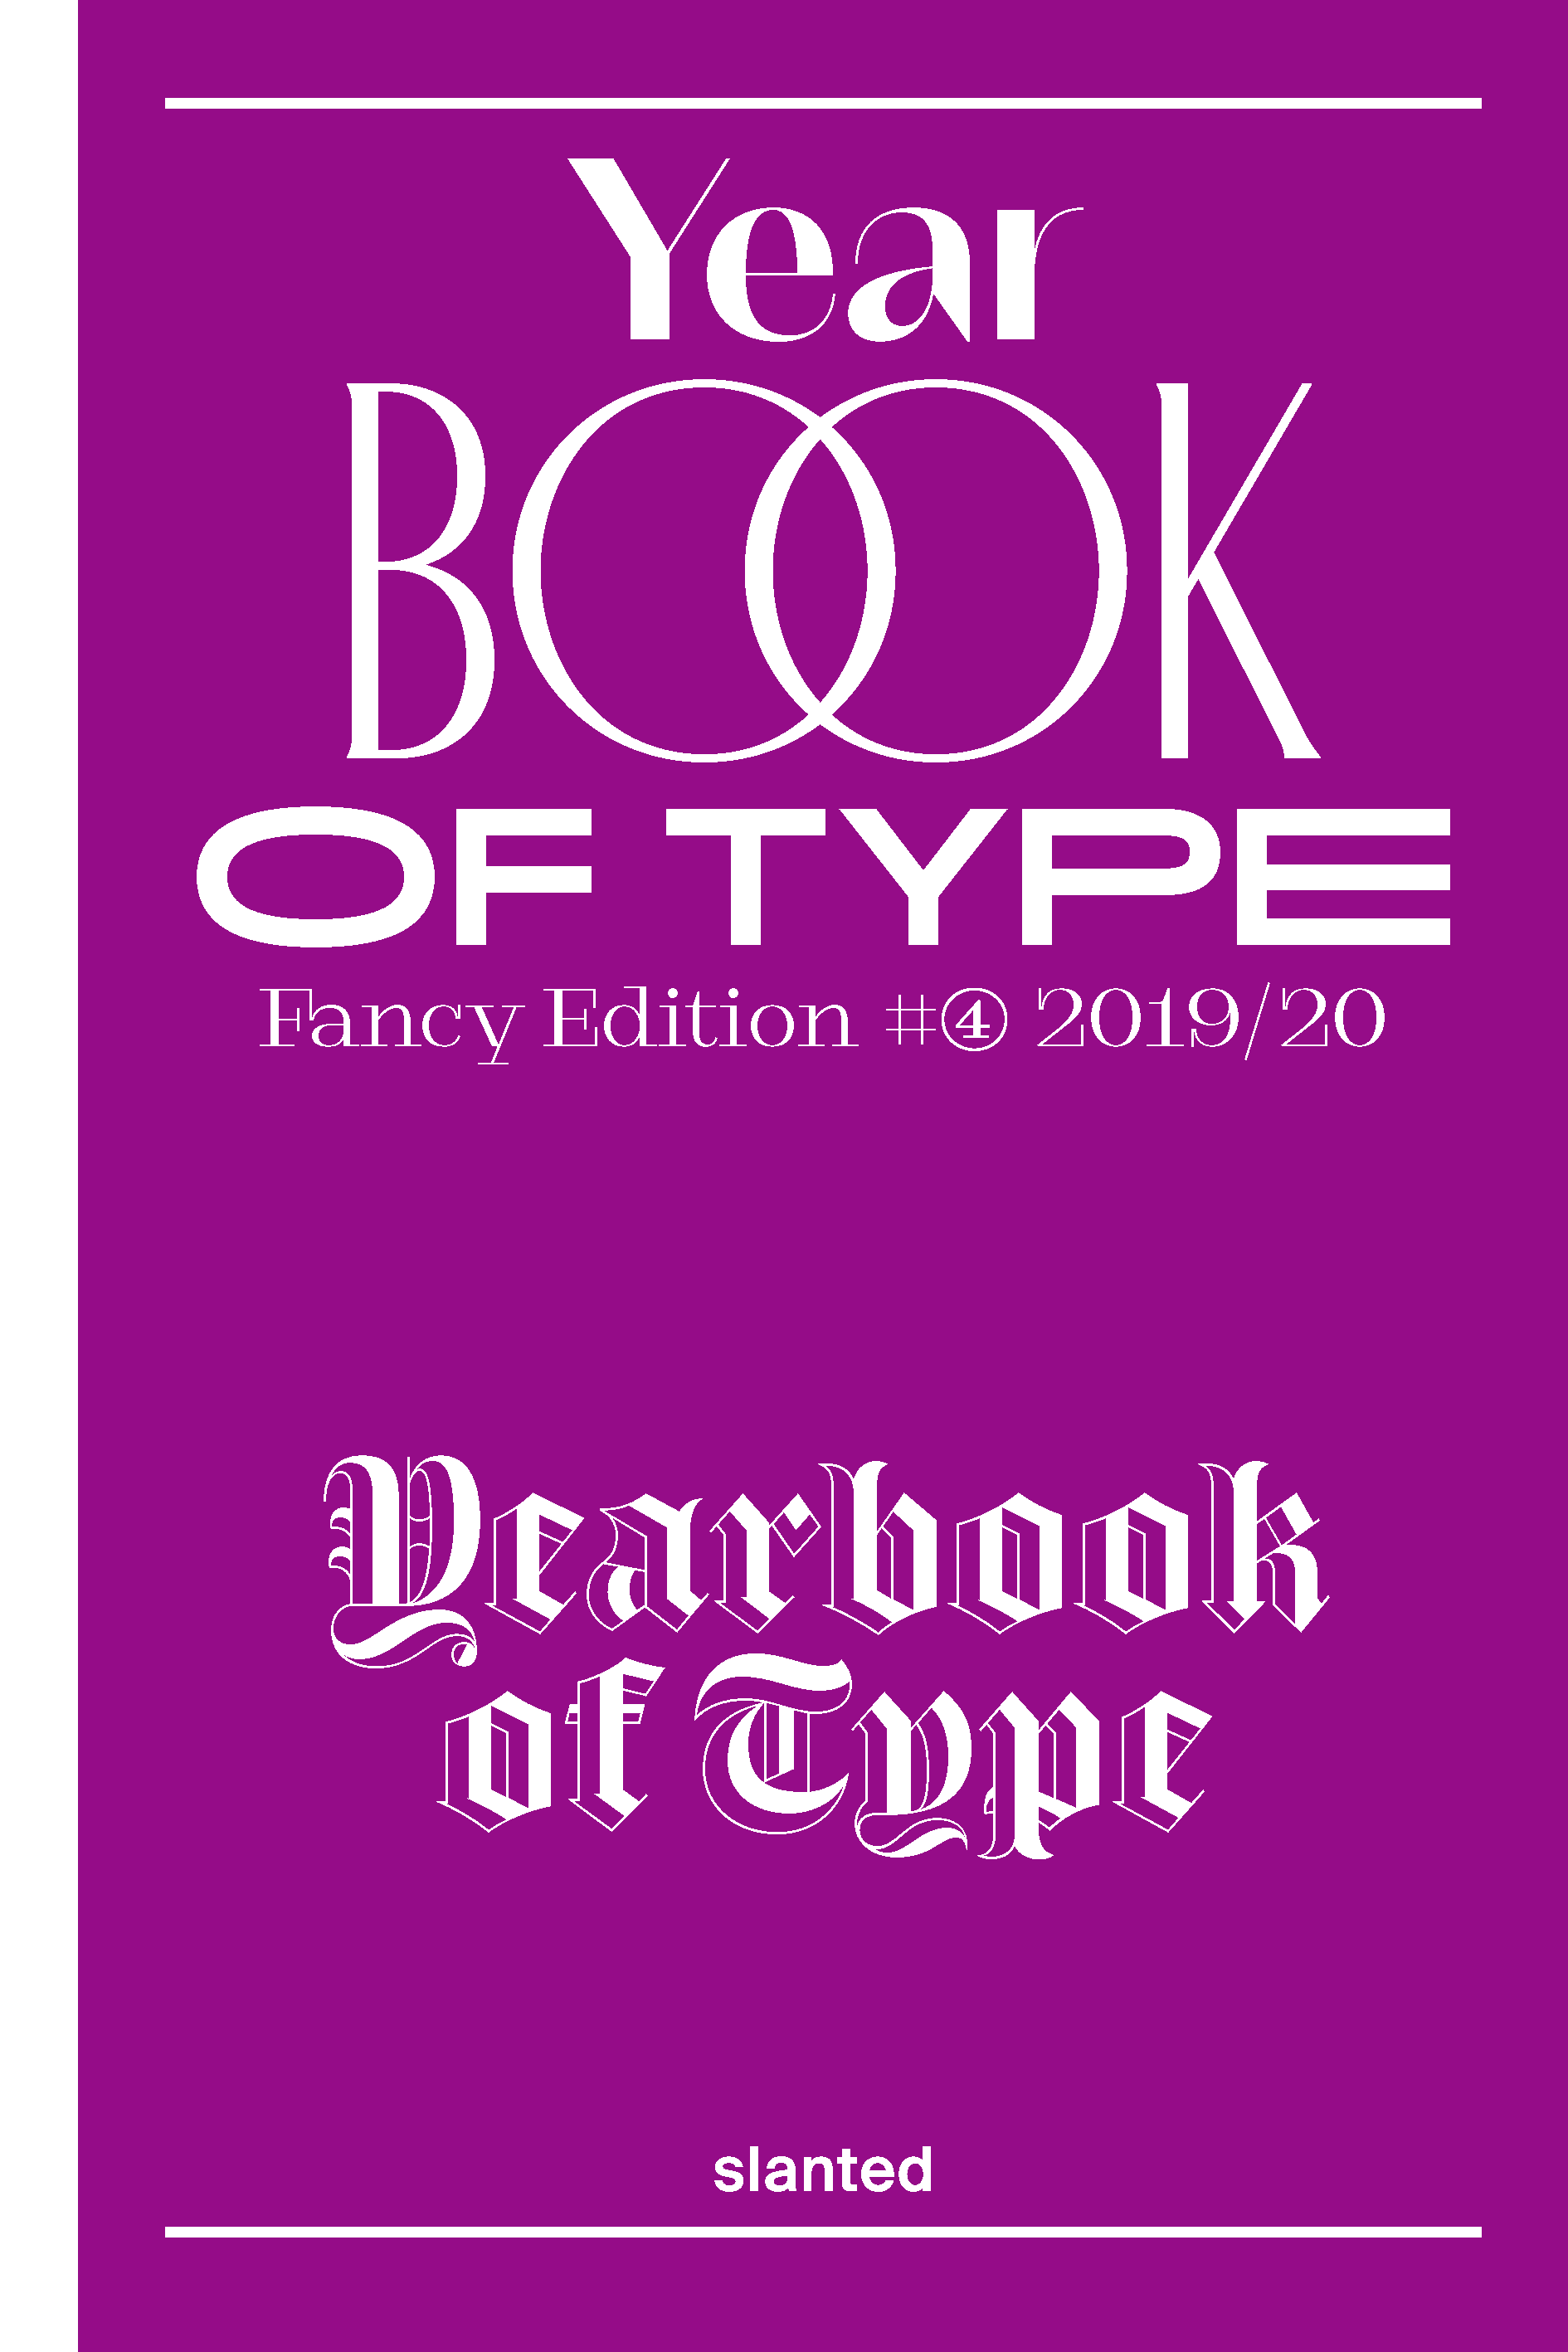 Yearbook of Type 2019/20 Cover